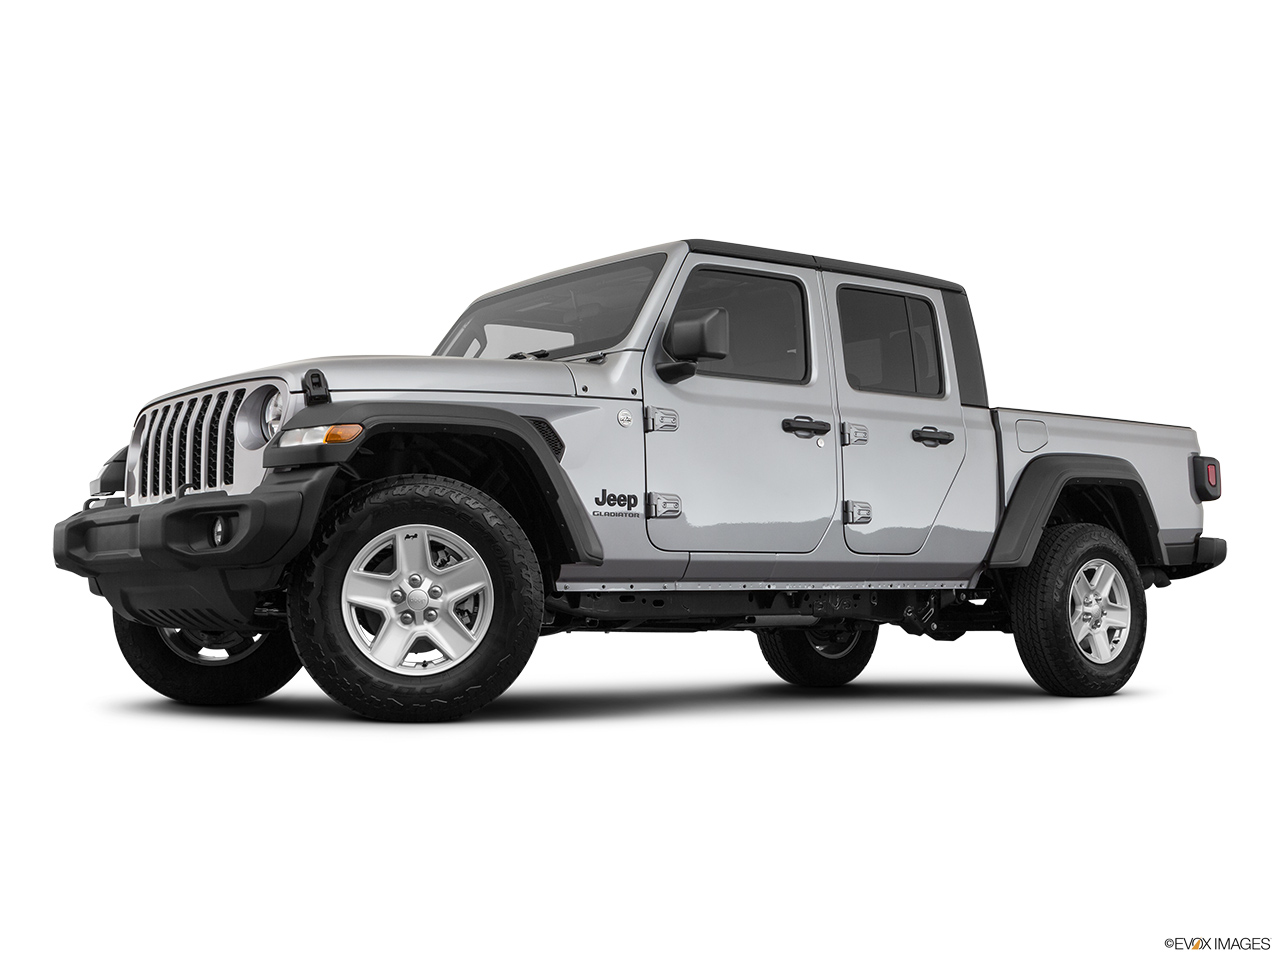 2020 Jeep Gladiator Sport S Low/wide front 5/8.